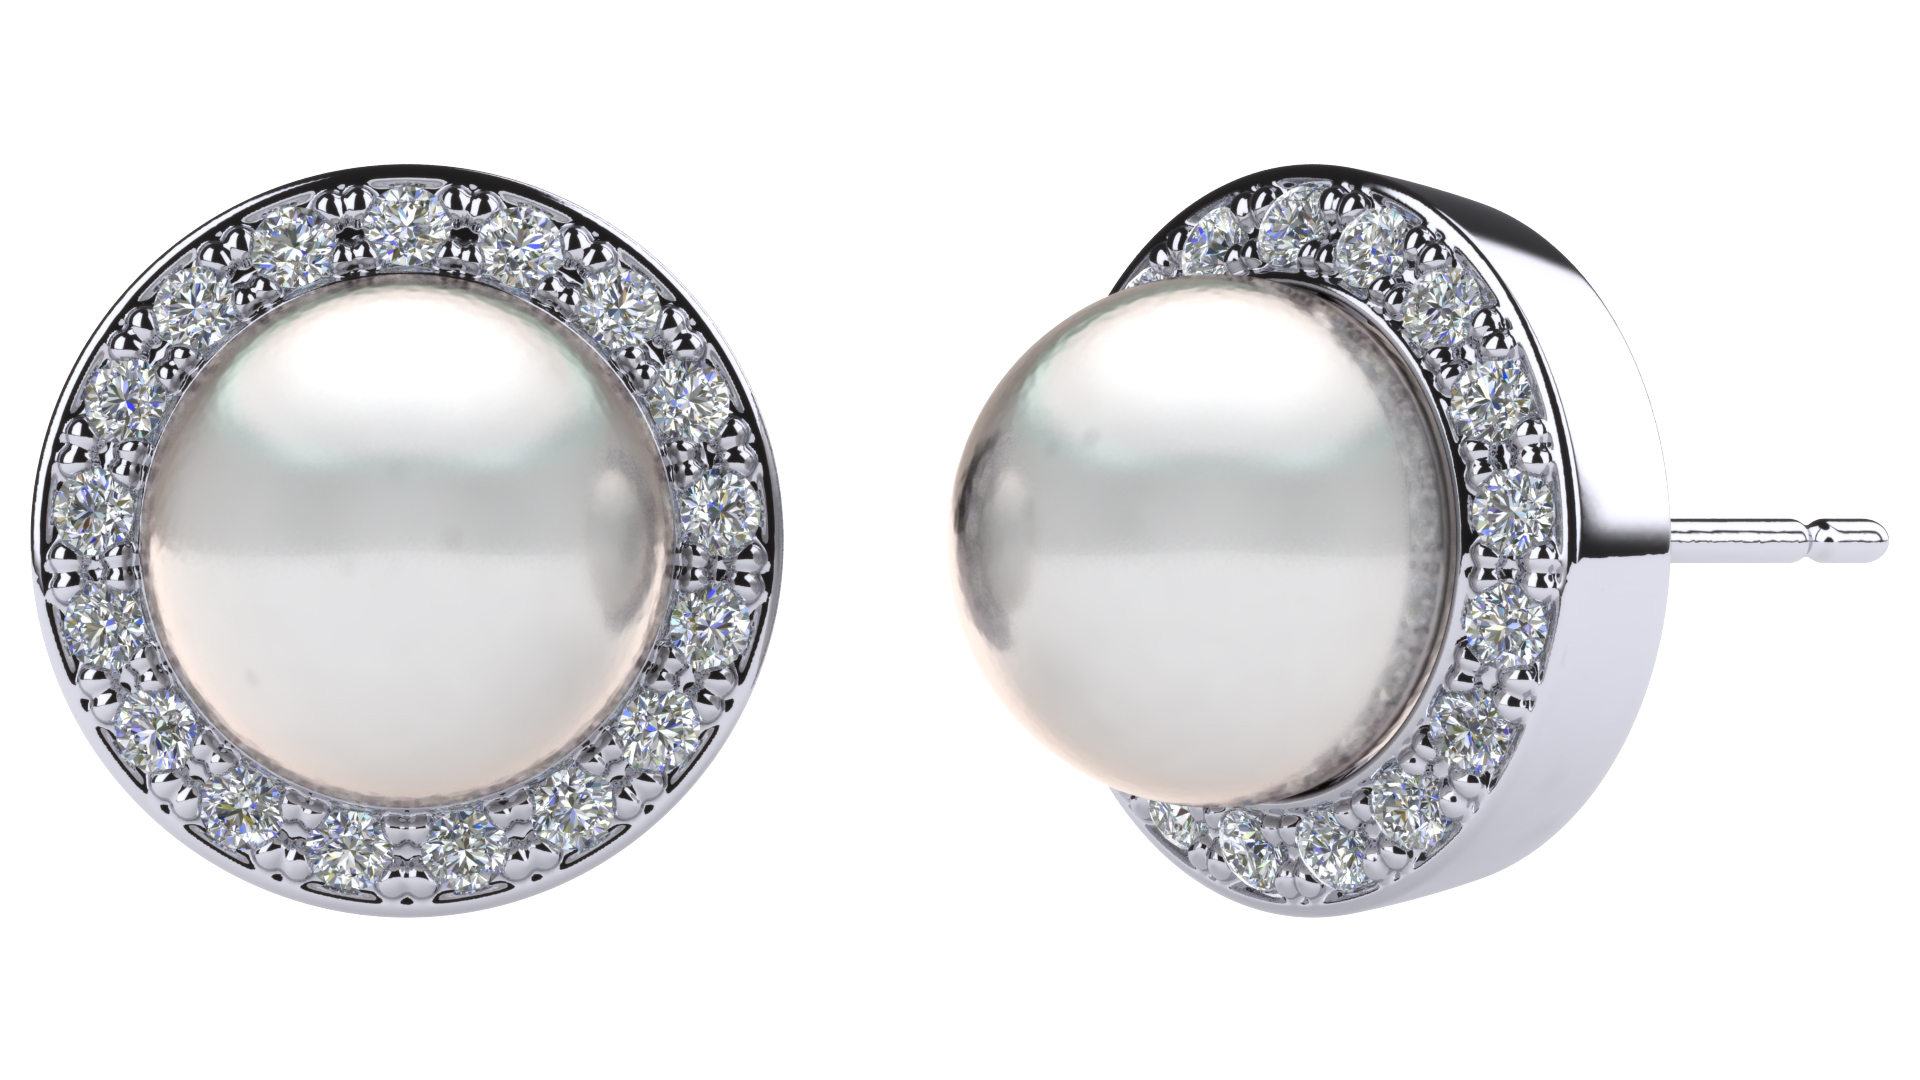 white-south-sea-pearl-celo-earring-8mm-.44-inch-wide-.44-inch-high-topleftview.jpg